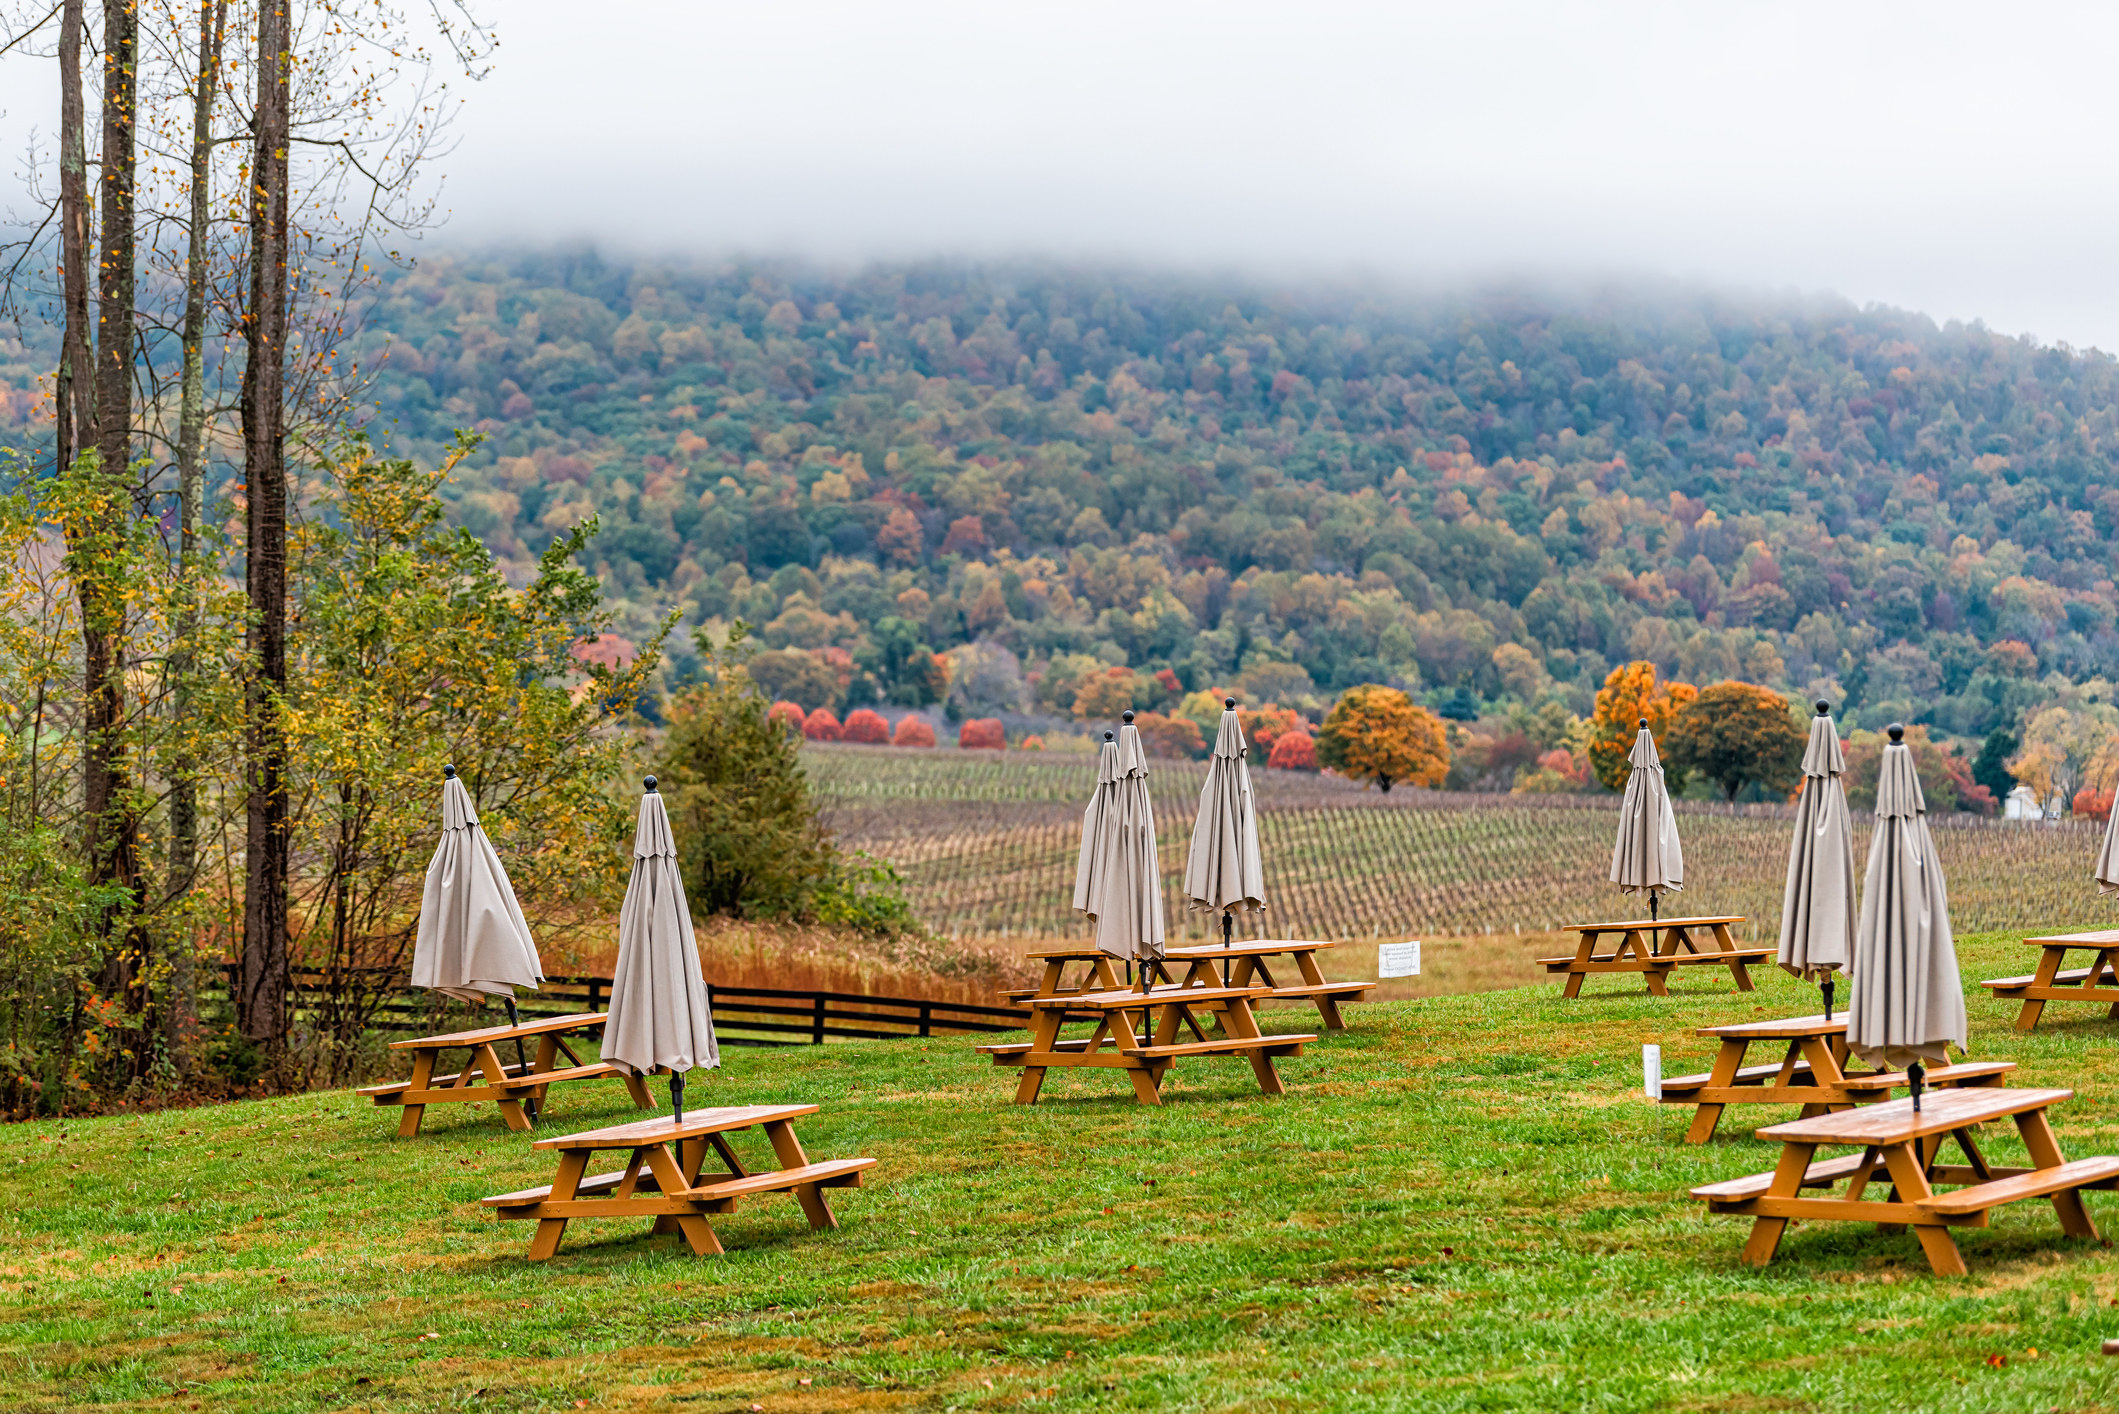 Picnic tables at a winery in Charlottesville during the fall